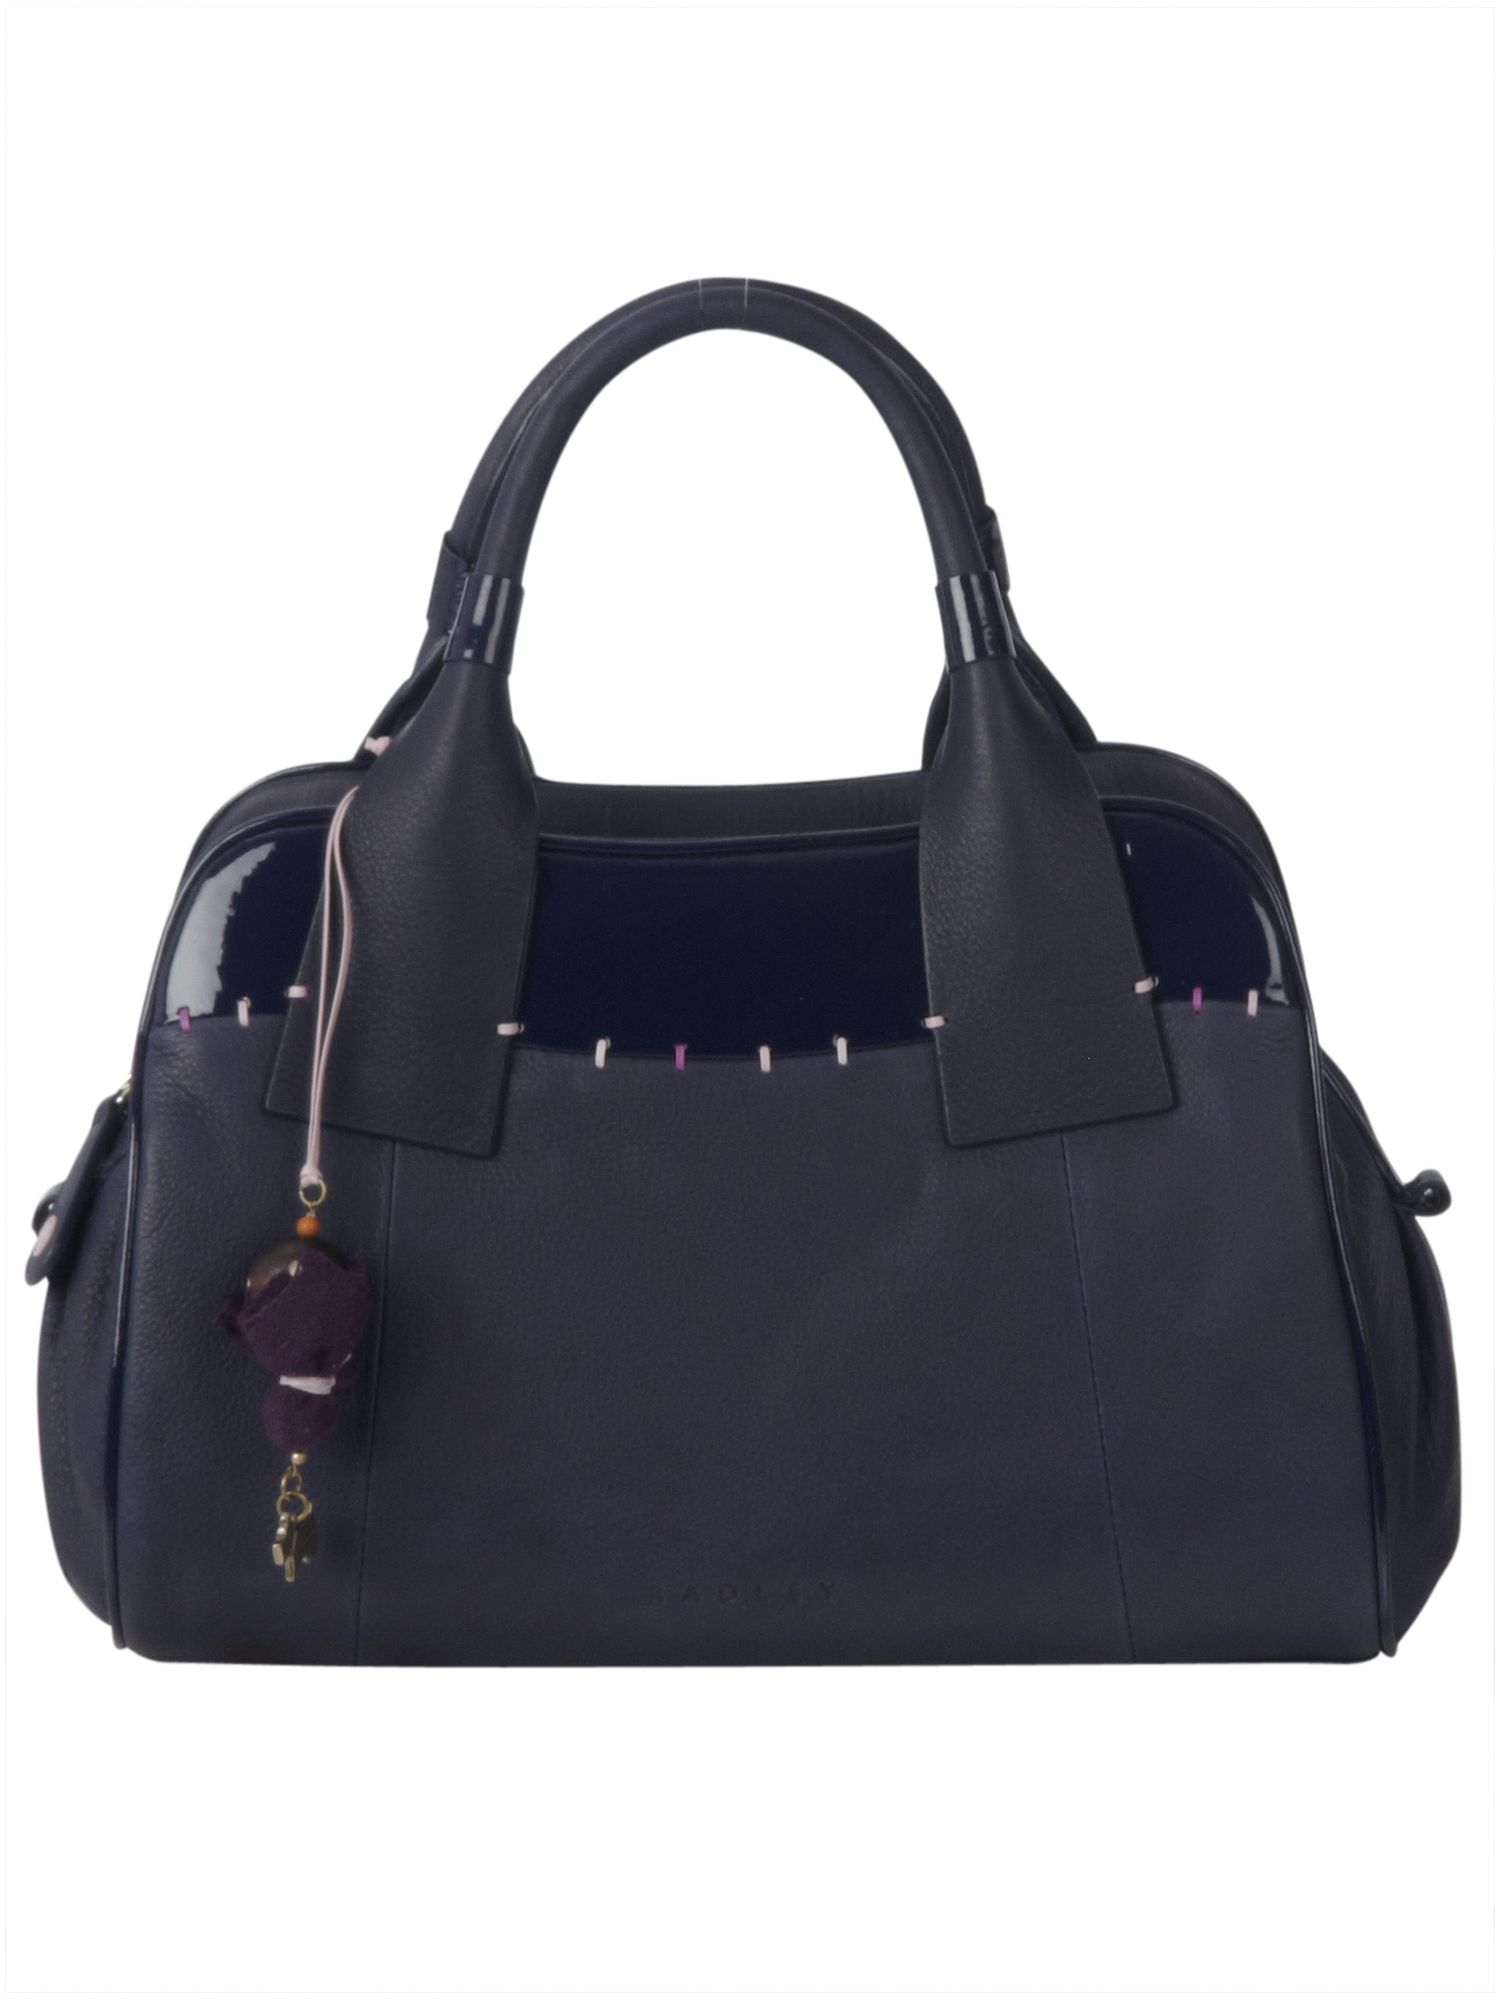 Porchester medium leather zip top tote bag